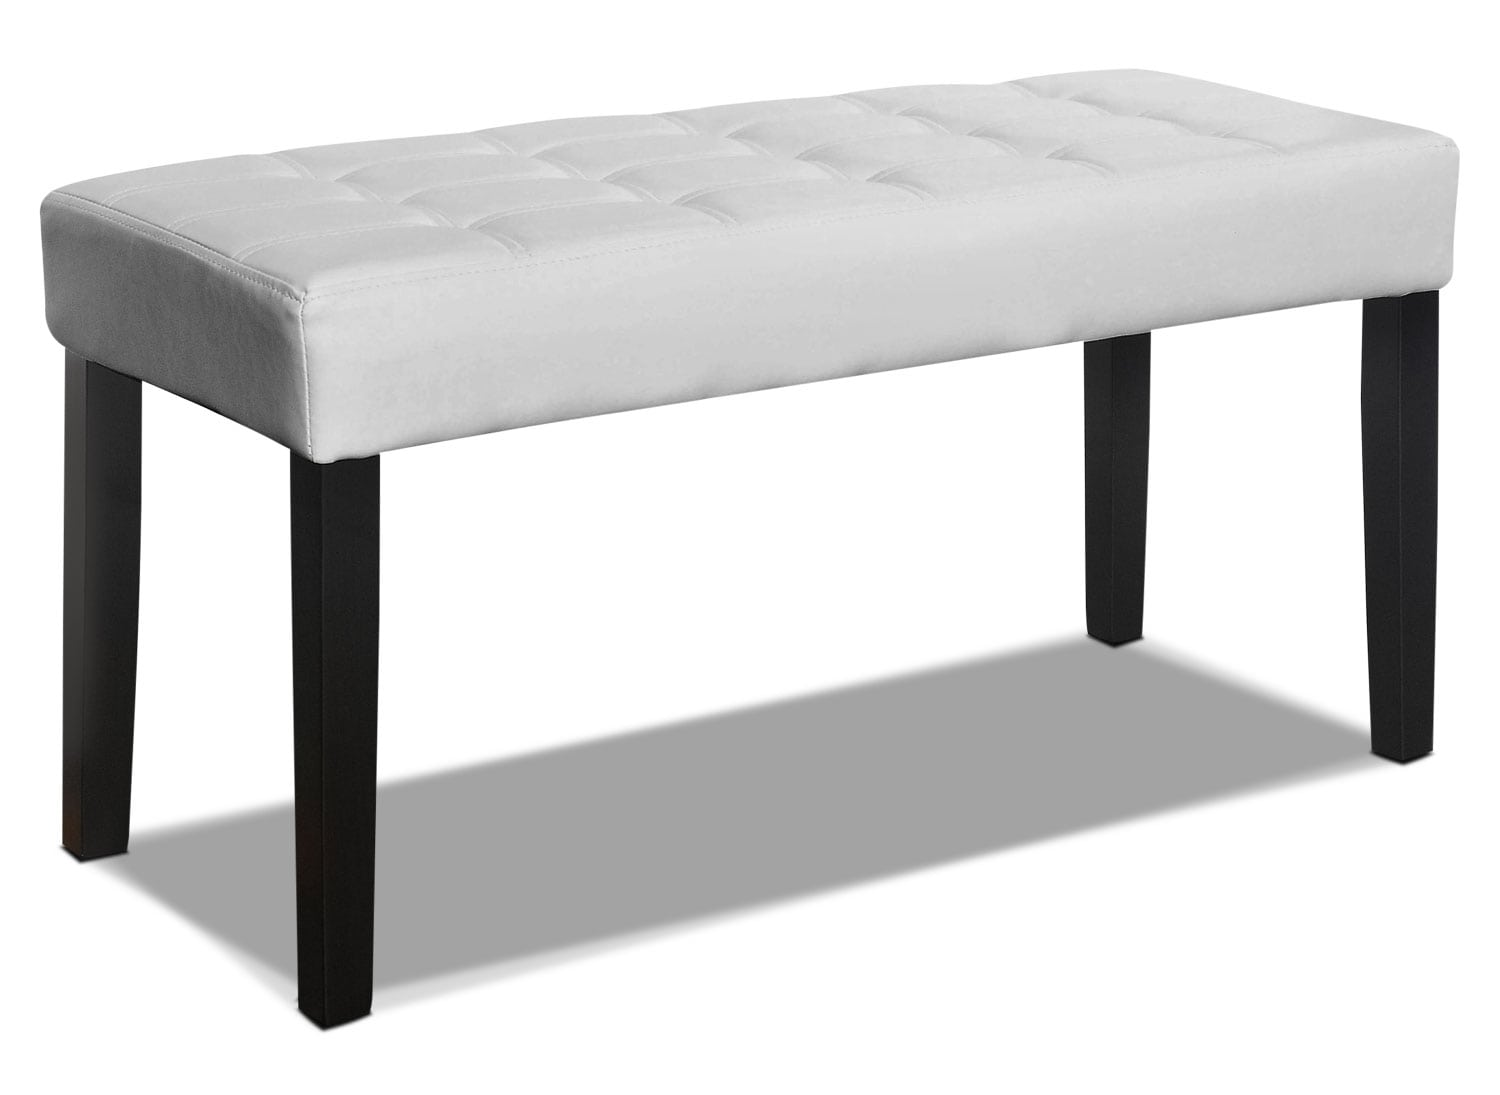 Accent and Occasional Furniture - Cali Tufted Bench – White